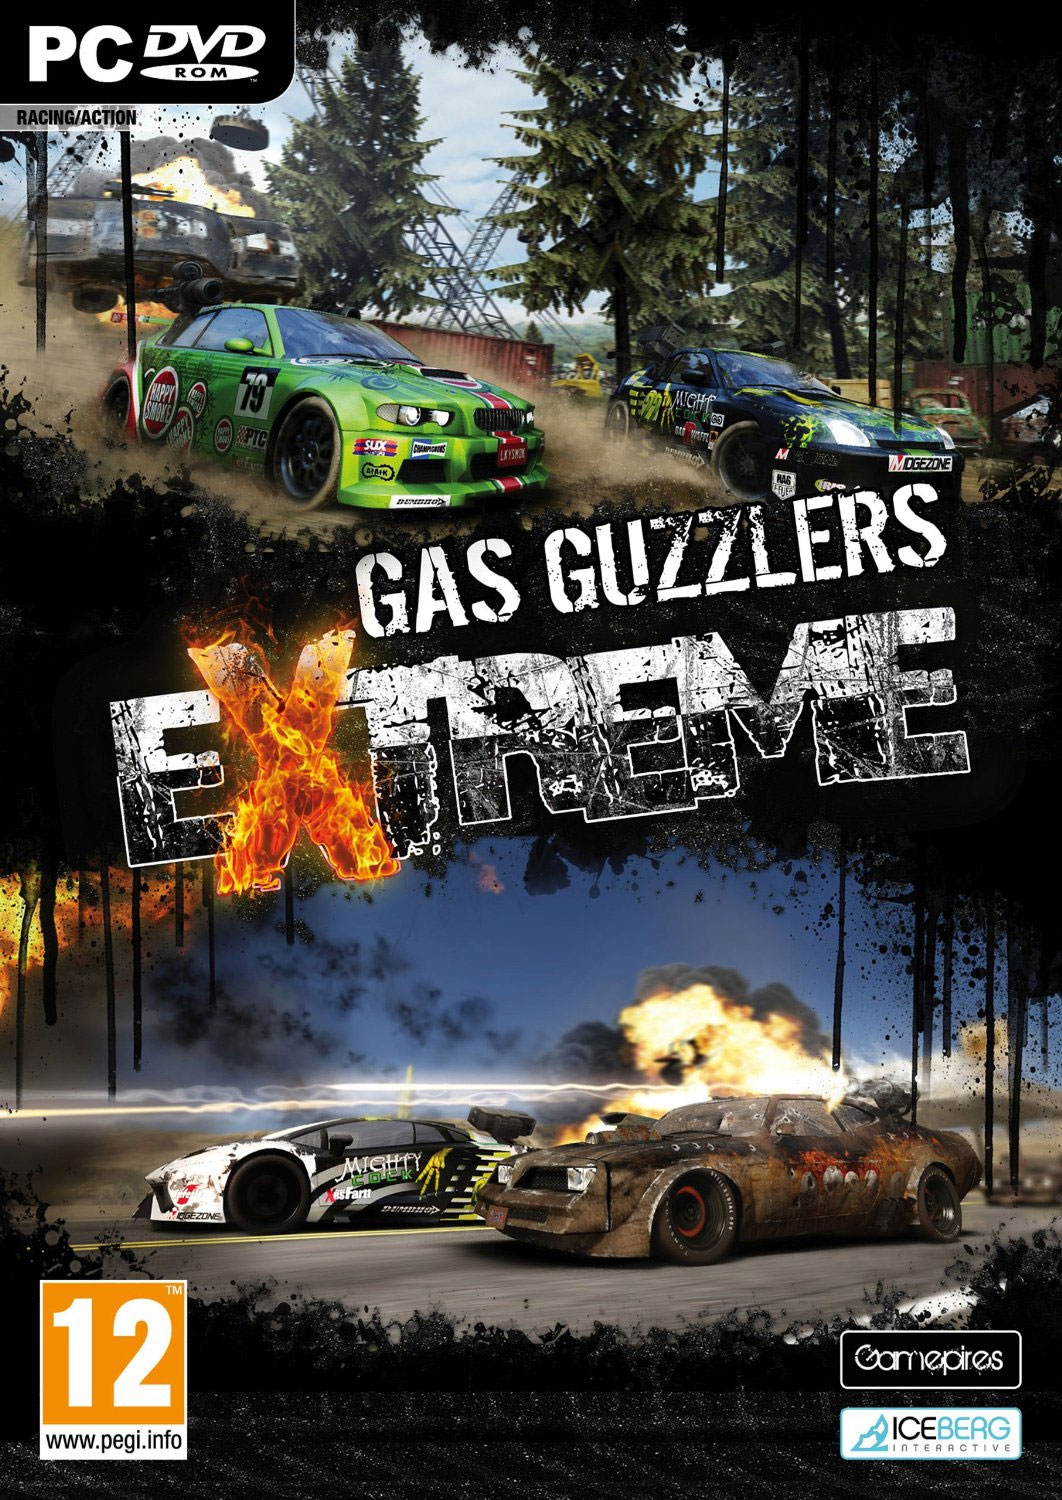 http://img5.downloadha.com/hosein/Game/April%202017/04/Gas-Guzzlers-Extreme-complete-edition-pc-cover-large.jpg